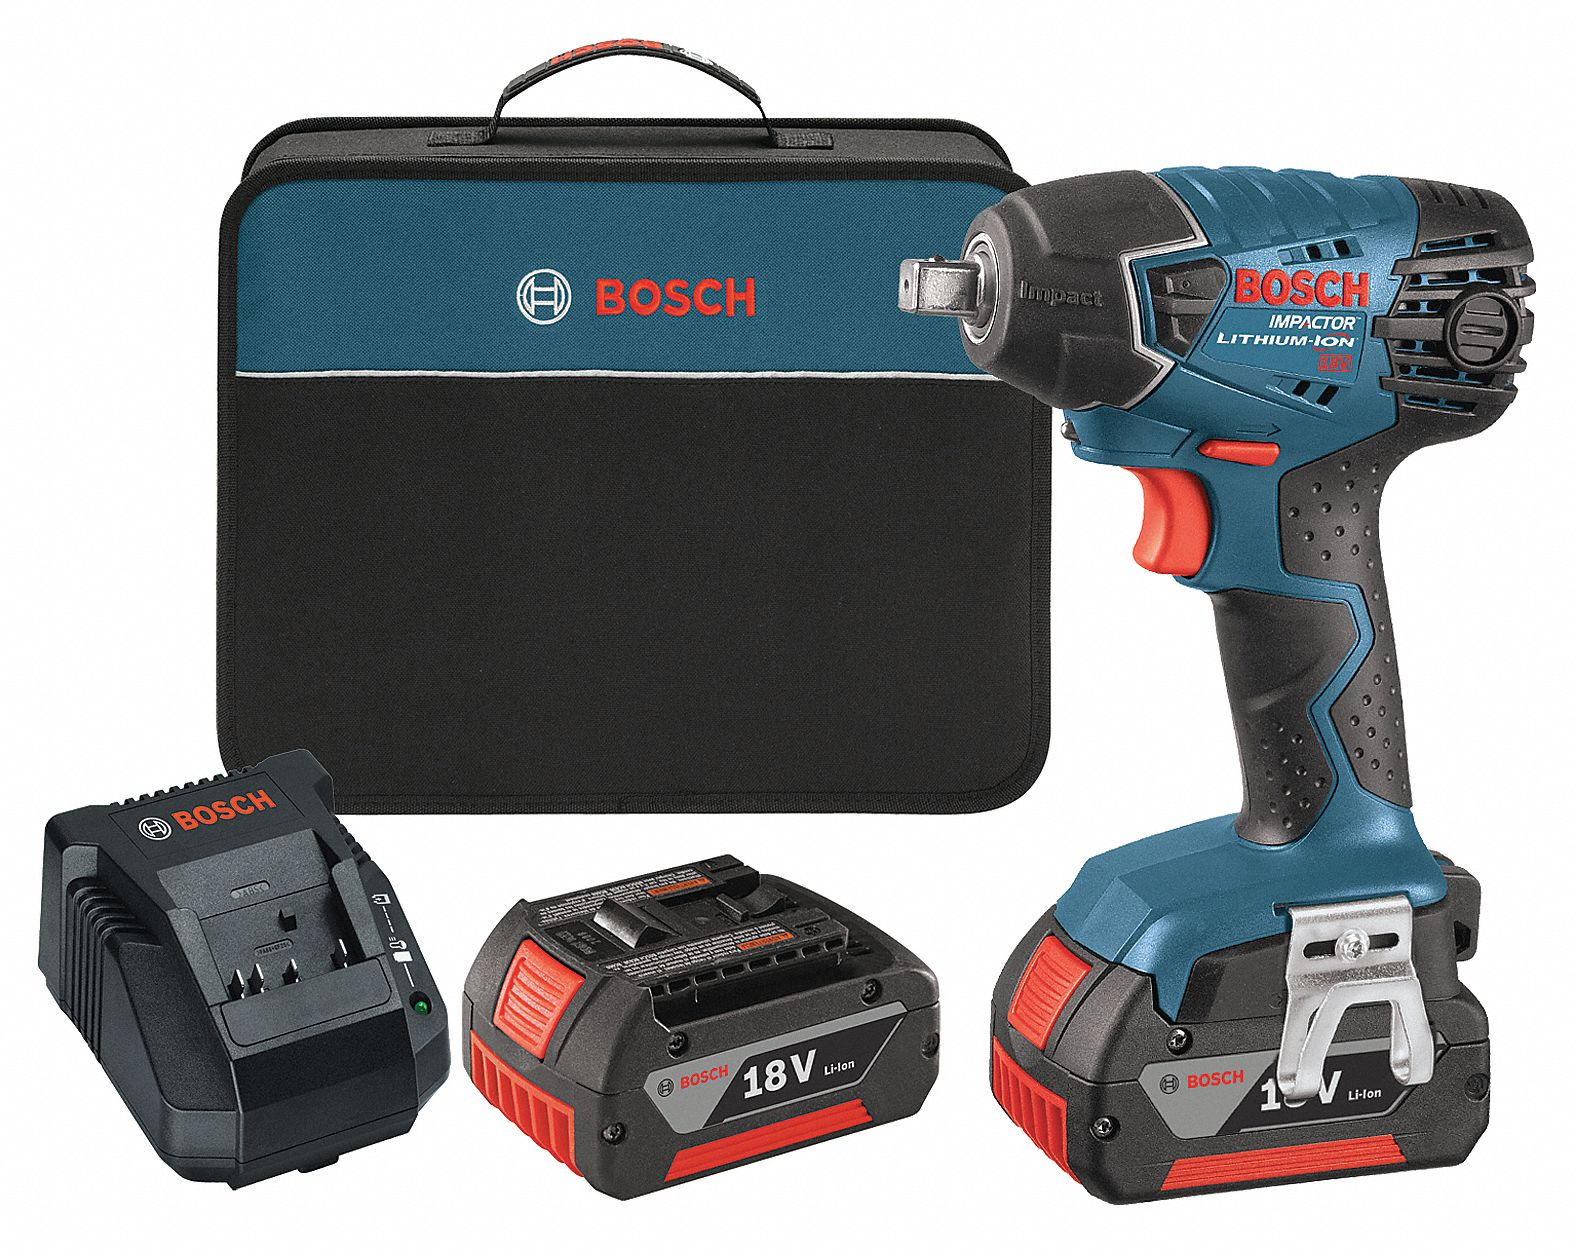 Bosch 1 2 Cordless Impact Wrench Kit 18 0 Voltage 133 Ft Lb Max Torque Battery Included 4wlk7 24618 01 Grainger